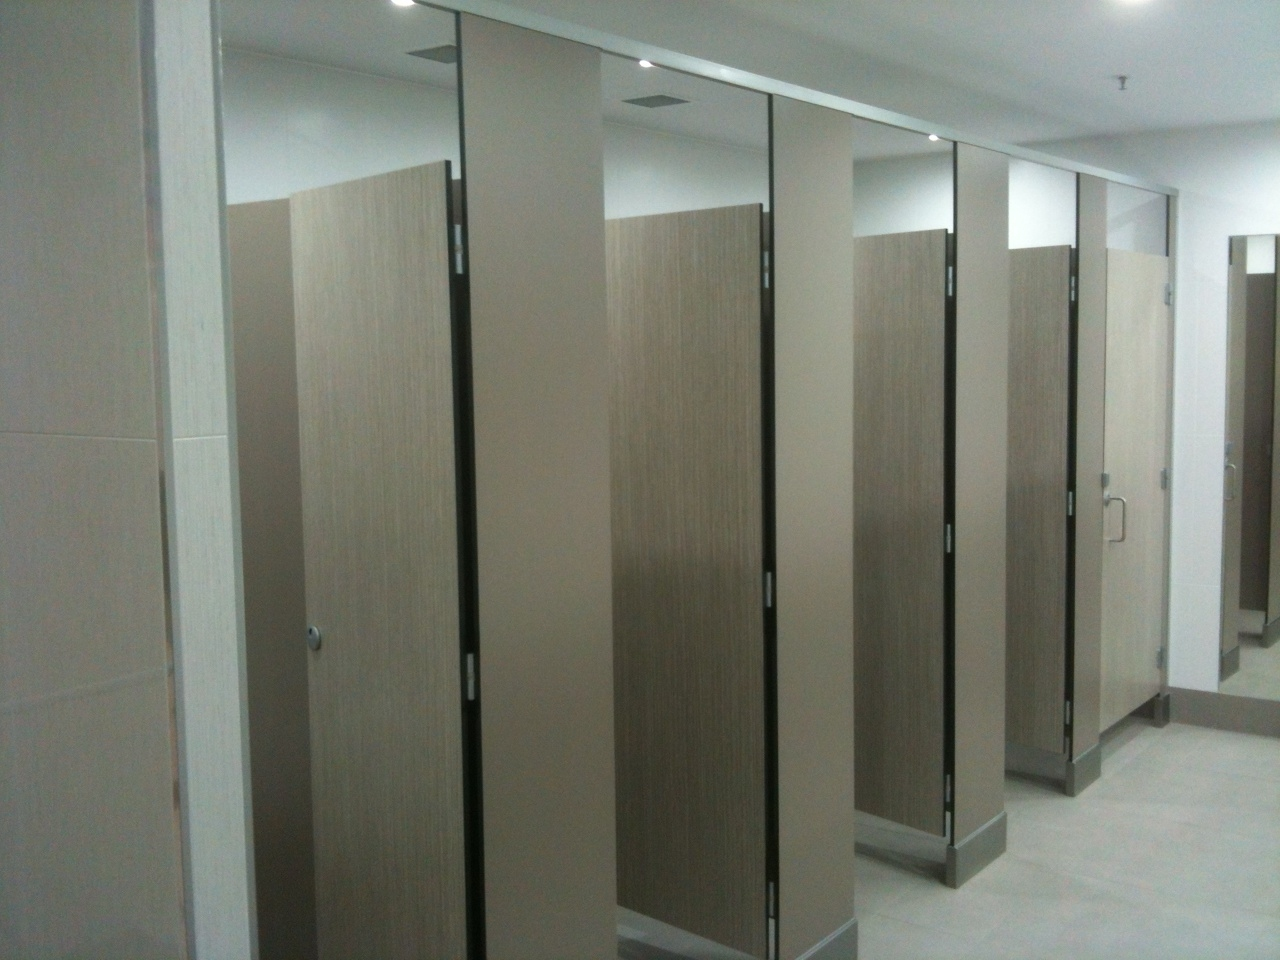 Bathroom Partitions Pictures To Pin On Pinterest Pinsdaddy